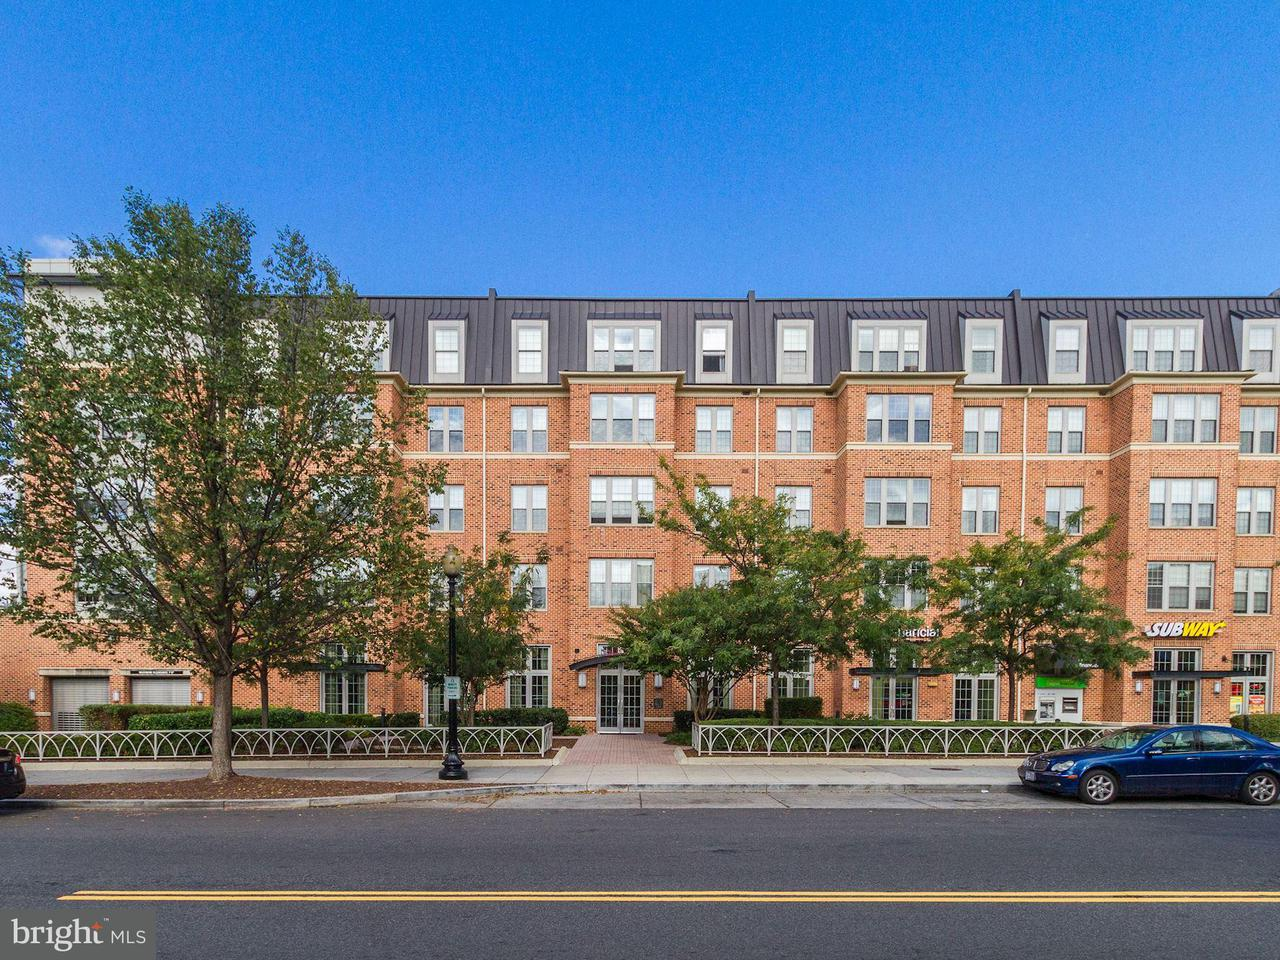 Single Family Home for Sale at 1391 PENNSYLVANIA AVE SE #M05 1391 PENNSYLVANIA AVE SE #M05 Washington, District Of Columbia 20003 United States